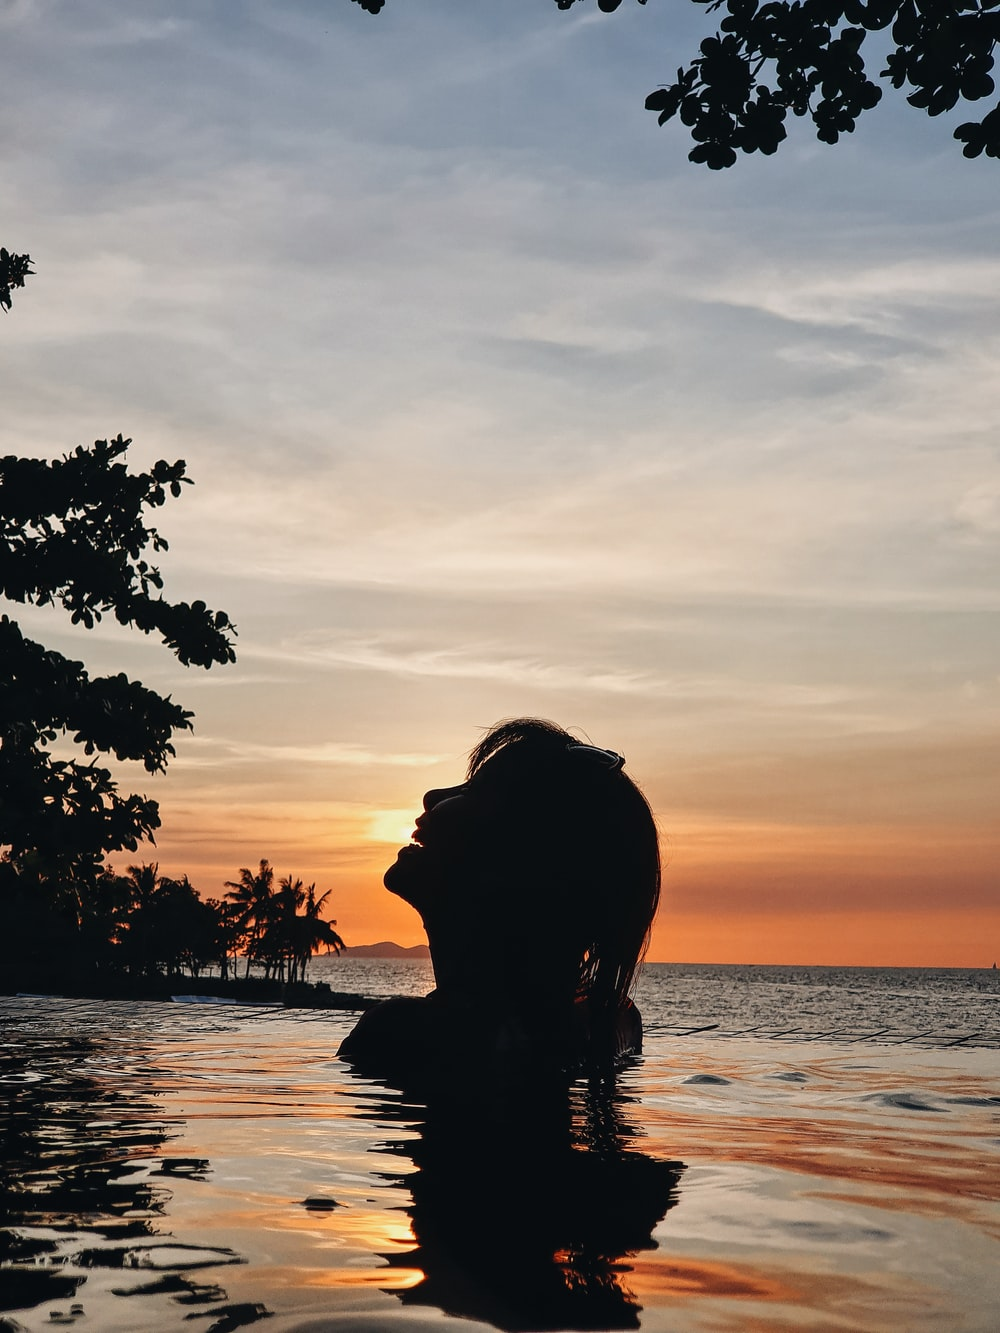 silhouette of woman in body of water during golden hour